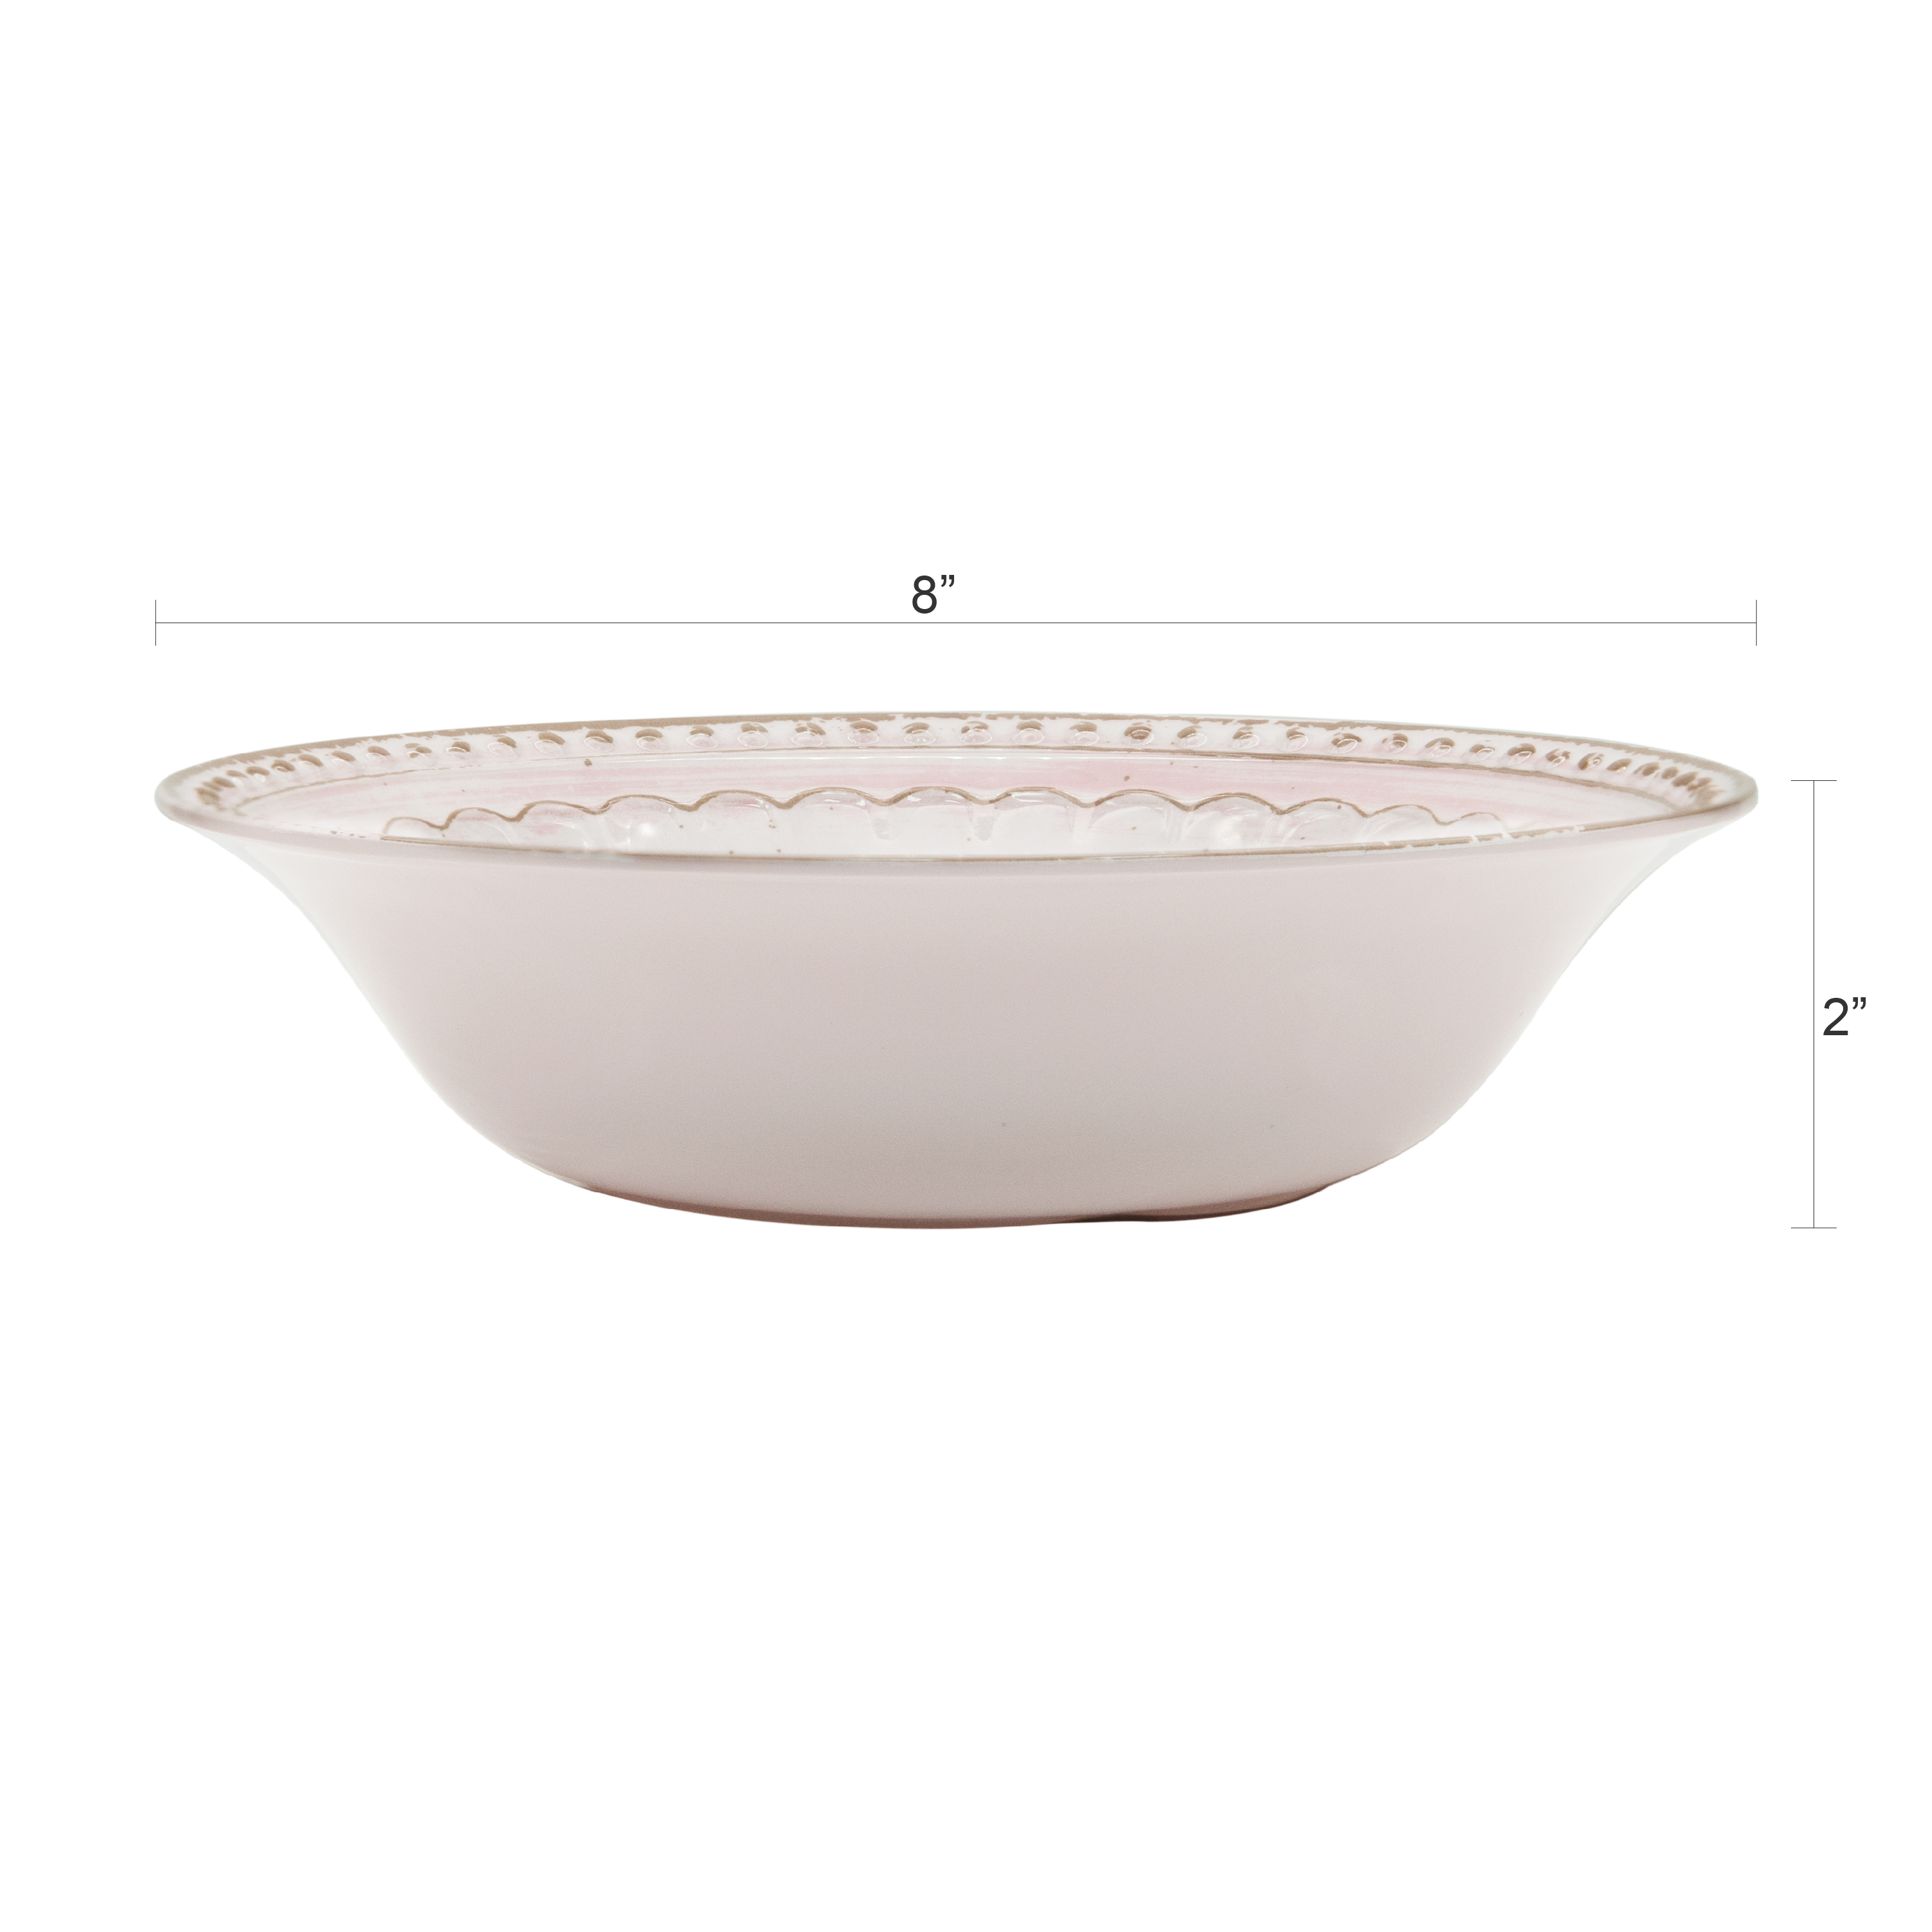 French Country Plate & Bowl Sets, Pink, 12-piece set slideshow image 7